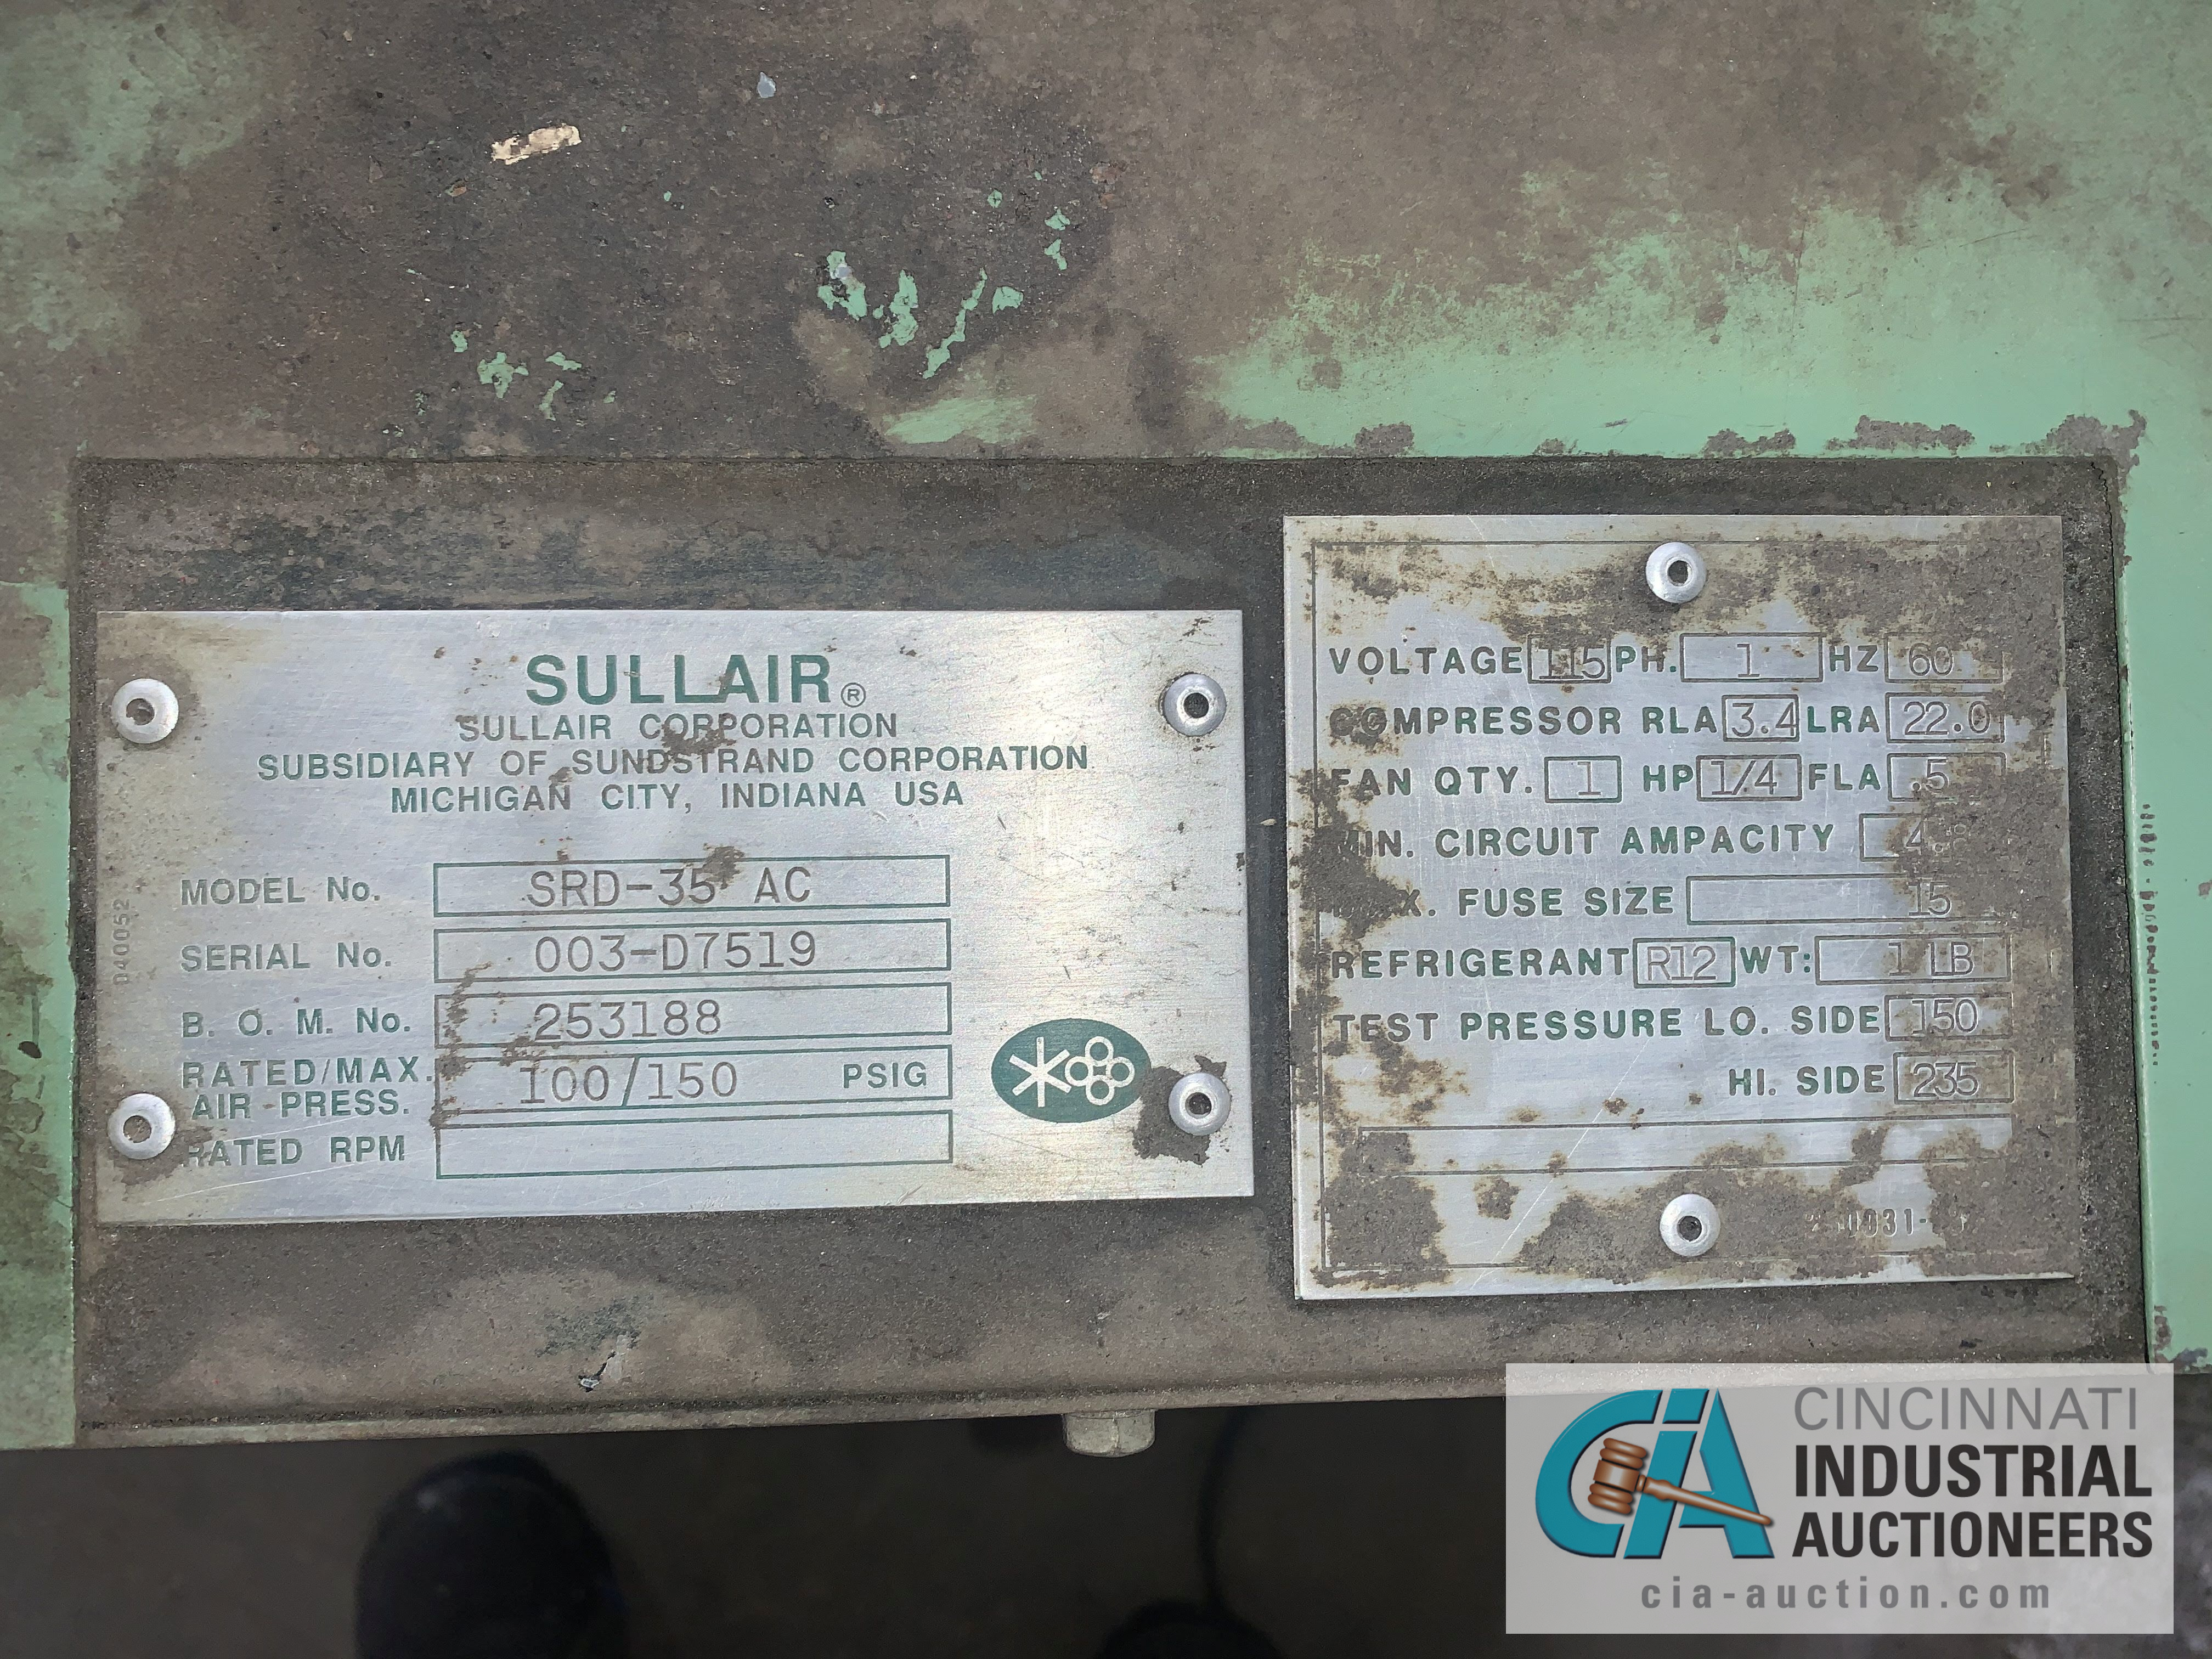 150 PSI SULLAIR MODEL SRD-35 A/C AIR DRYER - $20.00 Rigging Fee Due to Onsite Rigger - Located in - Image 2 of 2